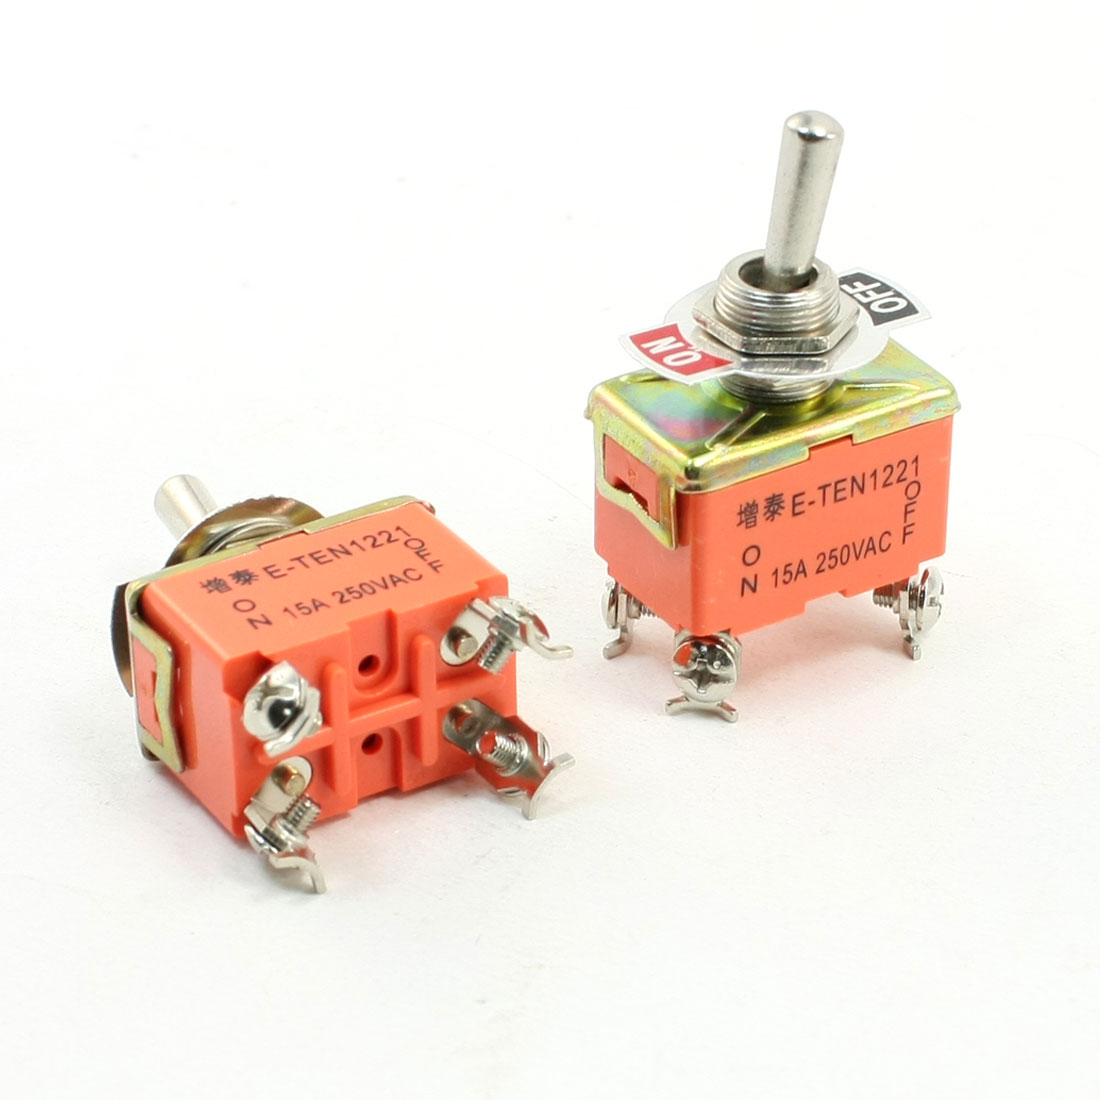 2pcs AC 250V 15A 4 Pins 2 Position On/Off DPST Latching Toggle Switch